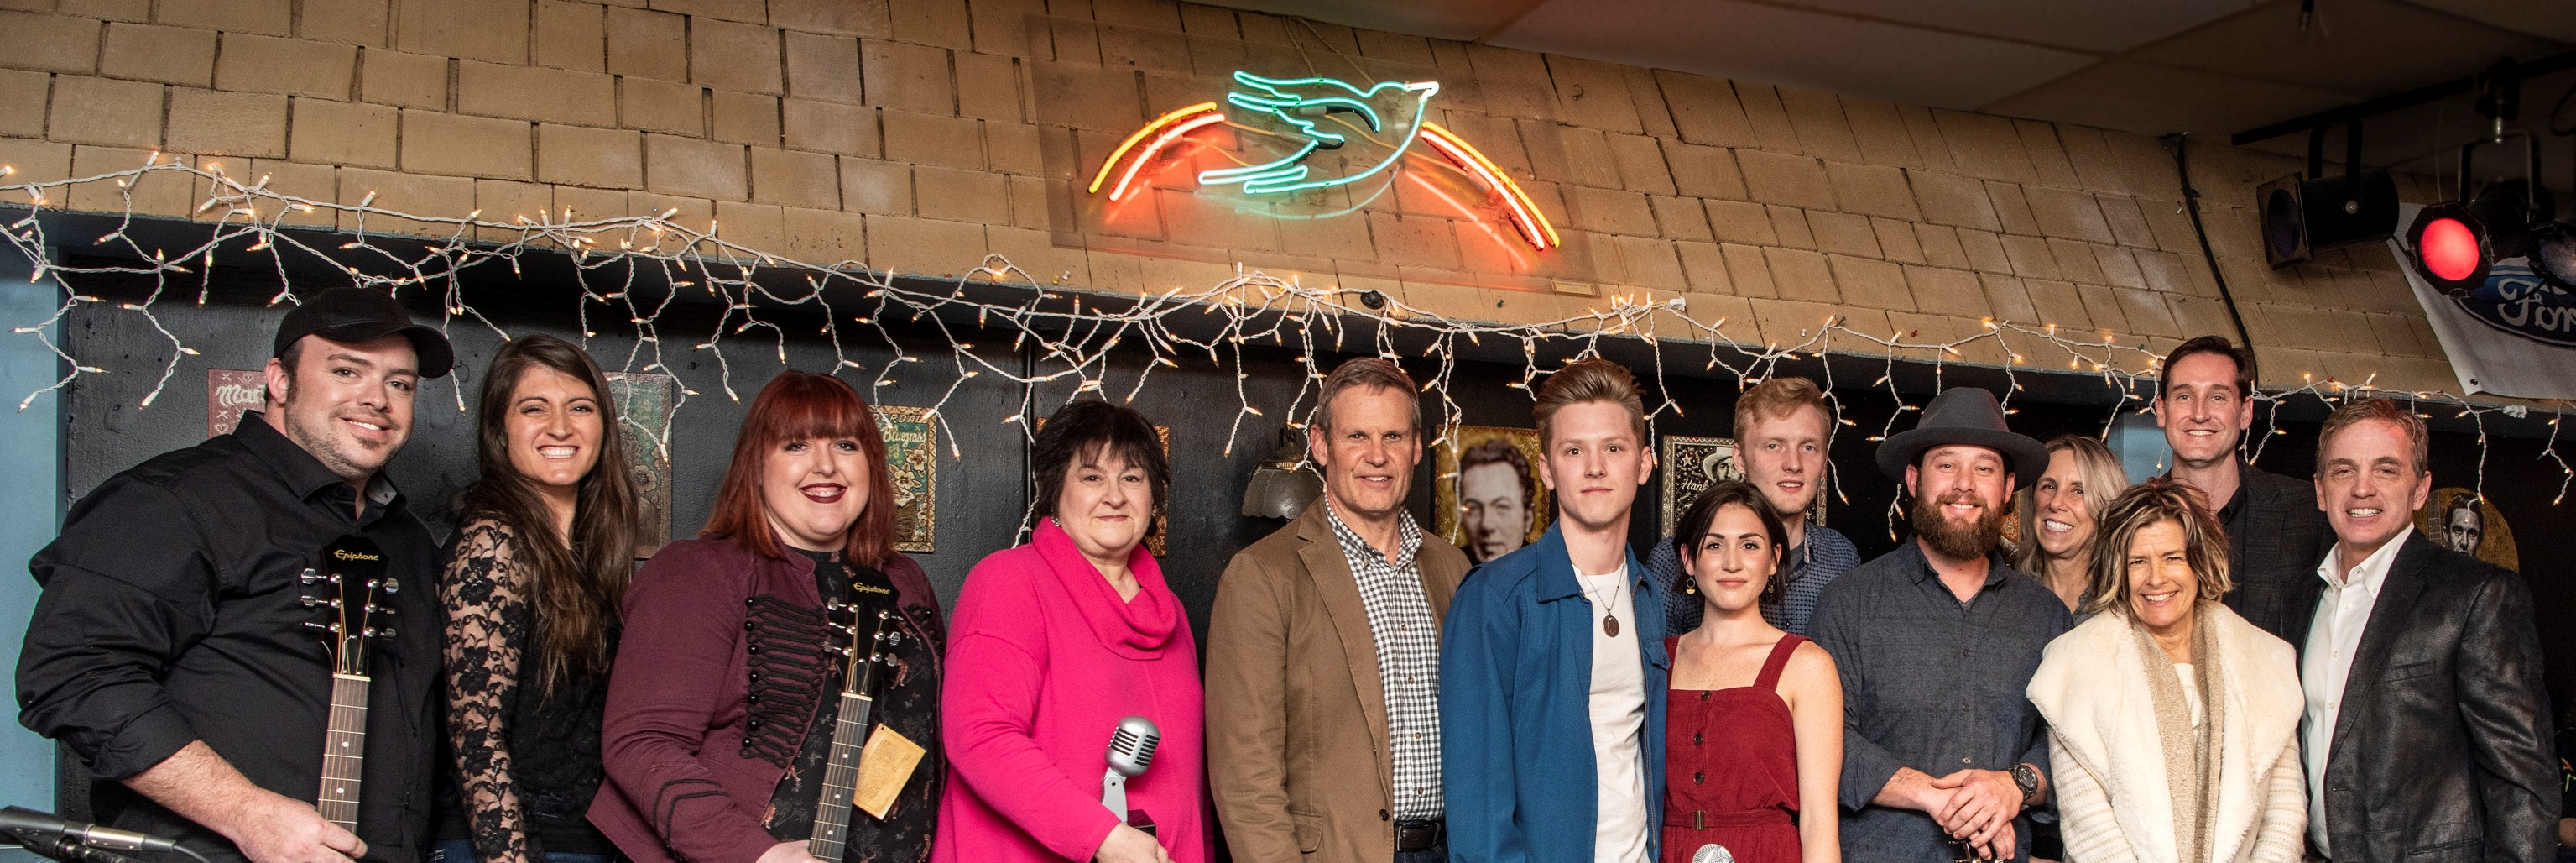 Tennessee Songwriters Week Open Mic Night winners with Gov. Bill Lee (center), performed at the famous Bluebird Cafe.